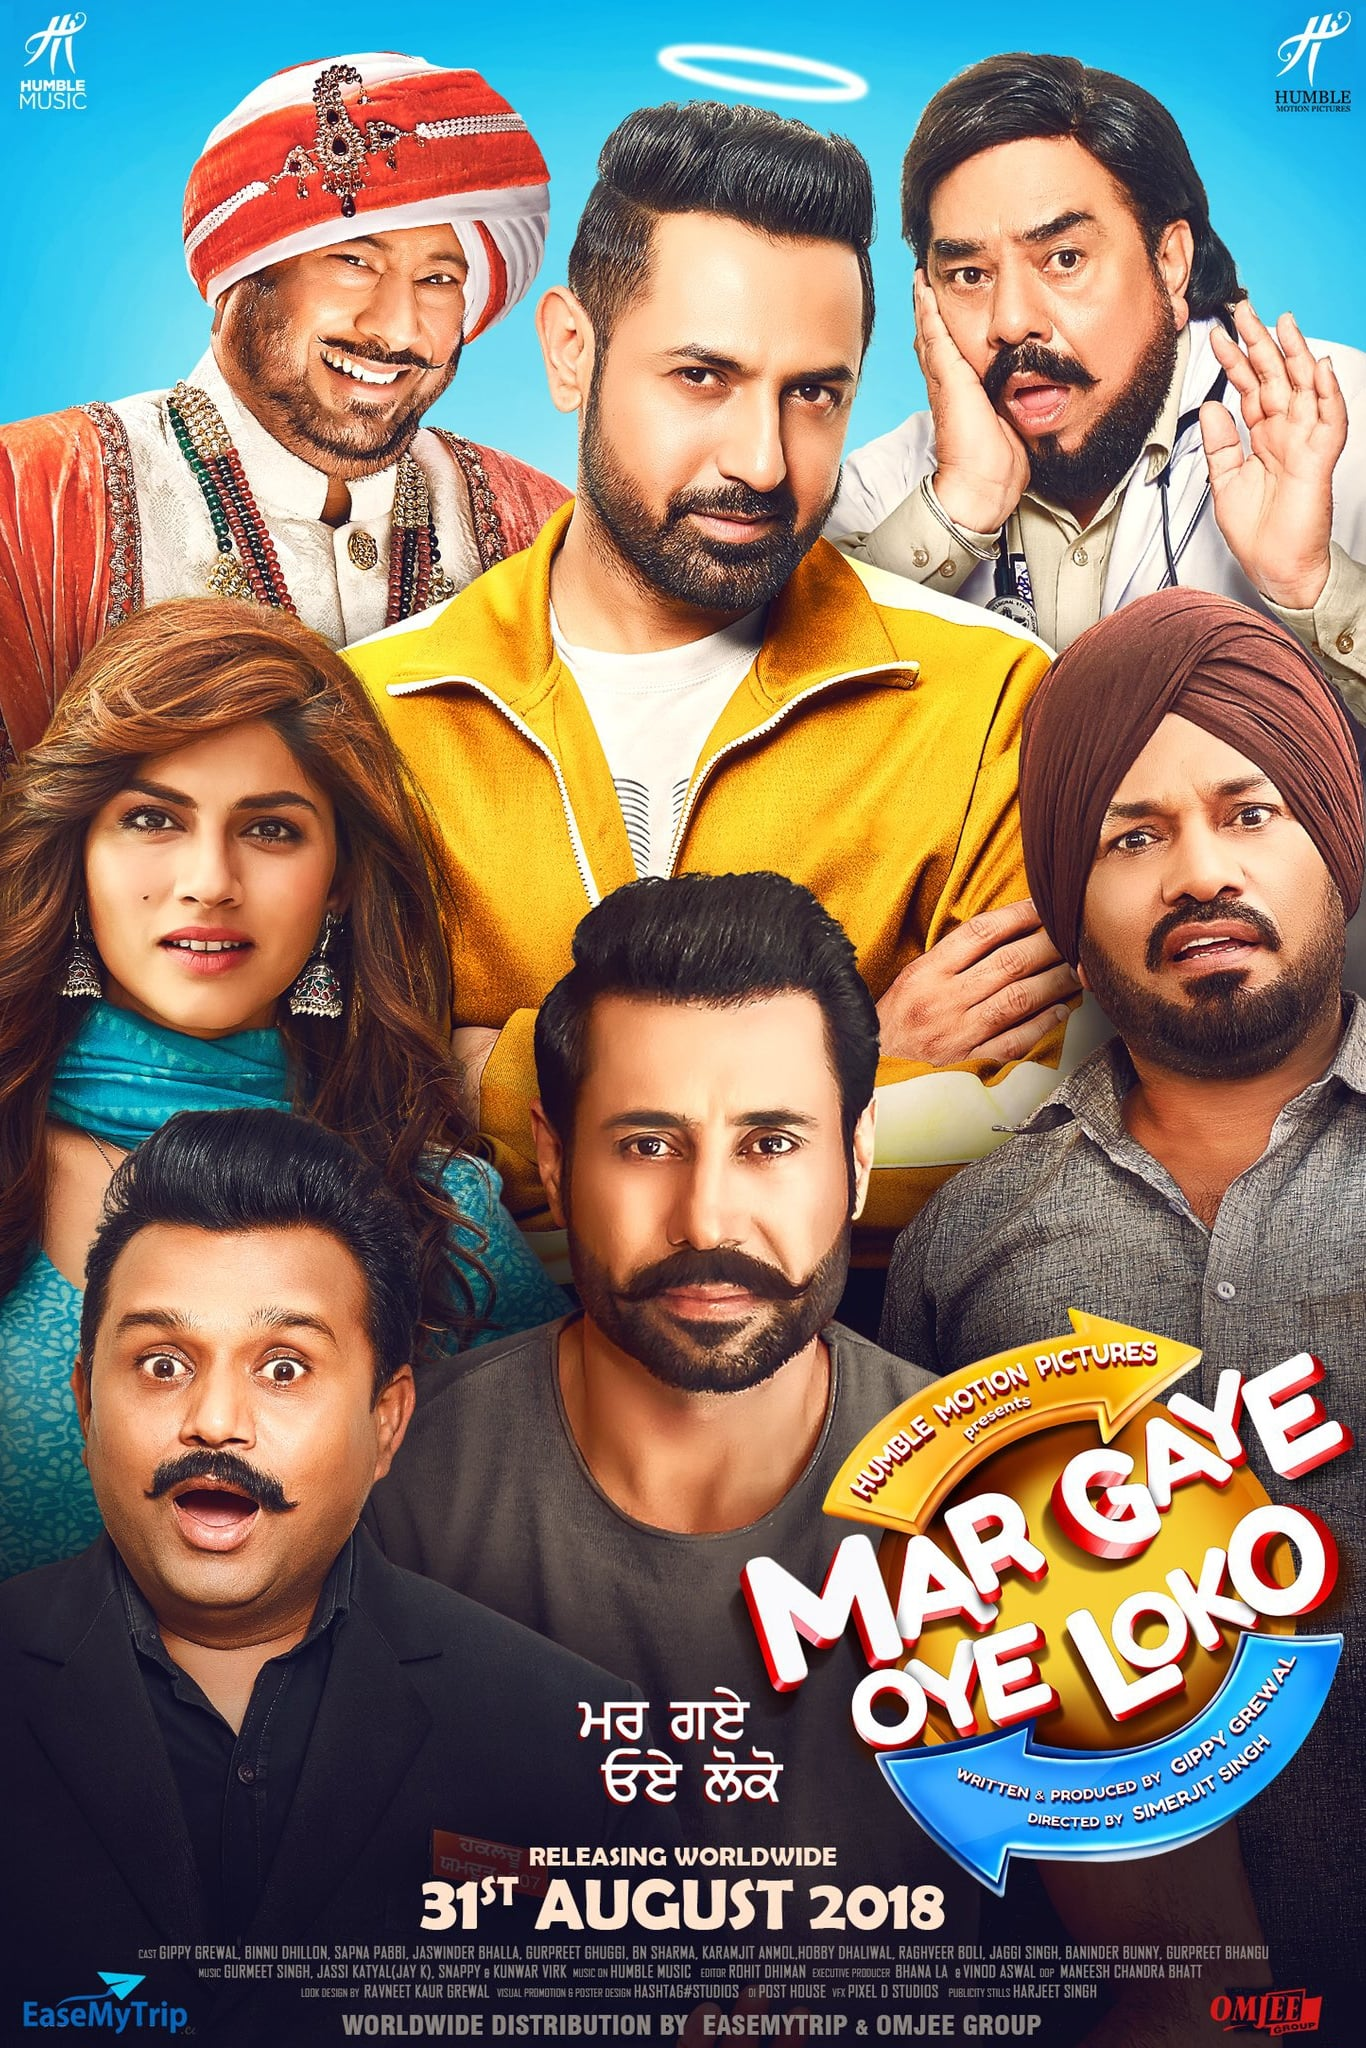 punjabi movies online free watch  »  7 Picture »  Awesome ..!